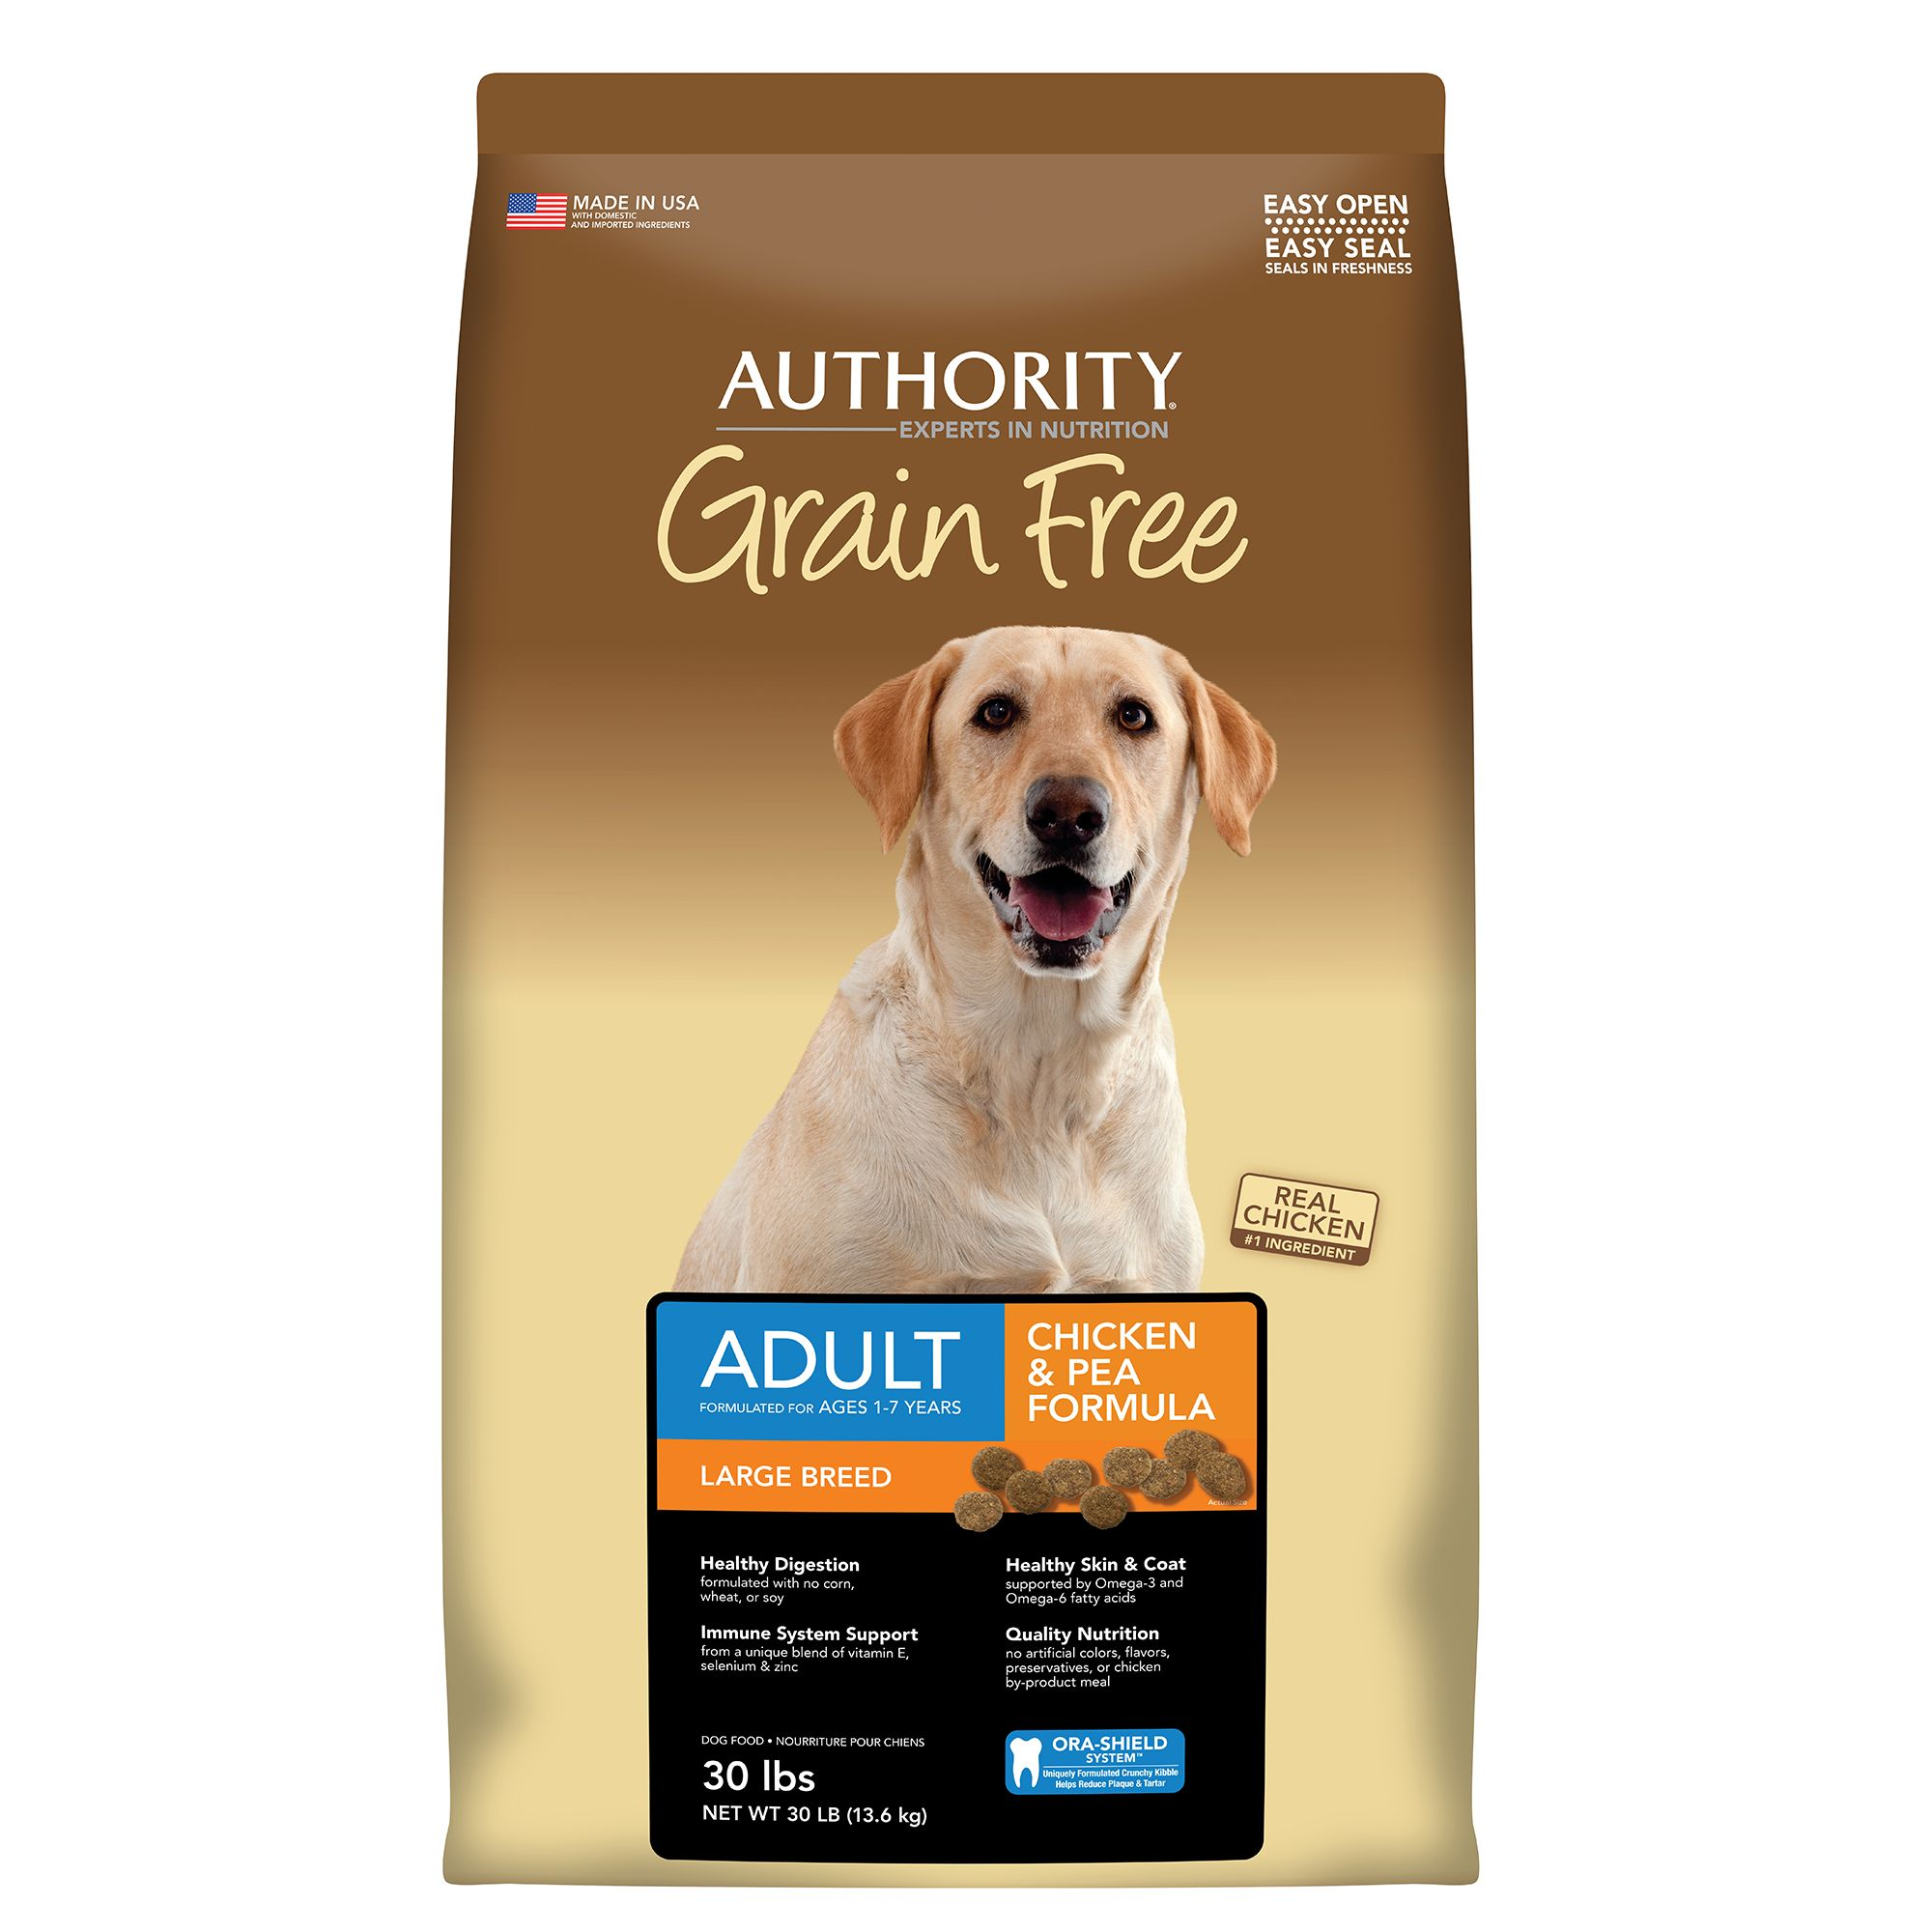 Authority® Large Breed Adult Dog Food - Grain Free, Chicken and Pea size: 30 Lb